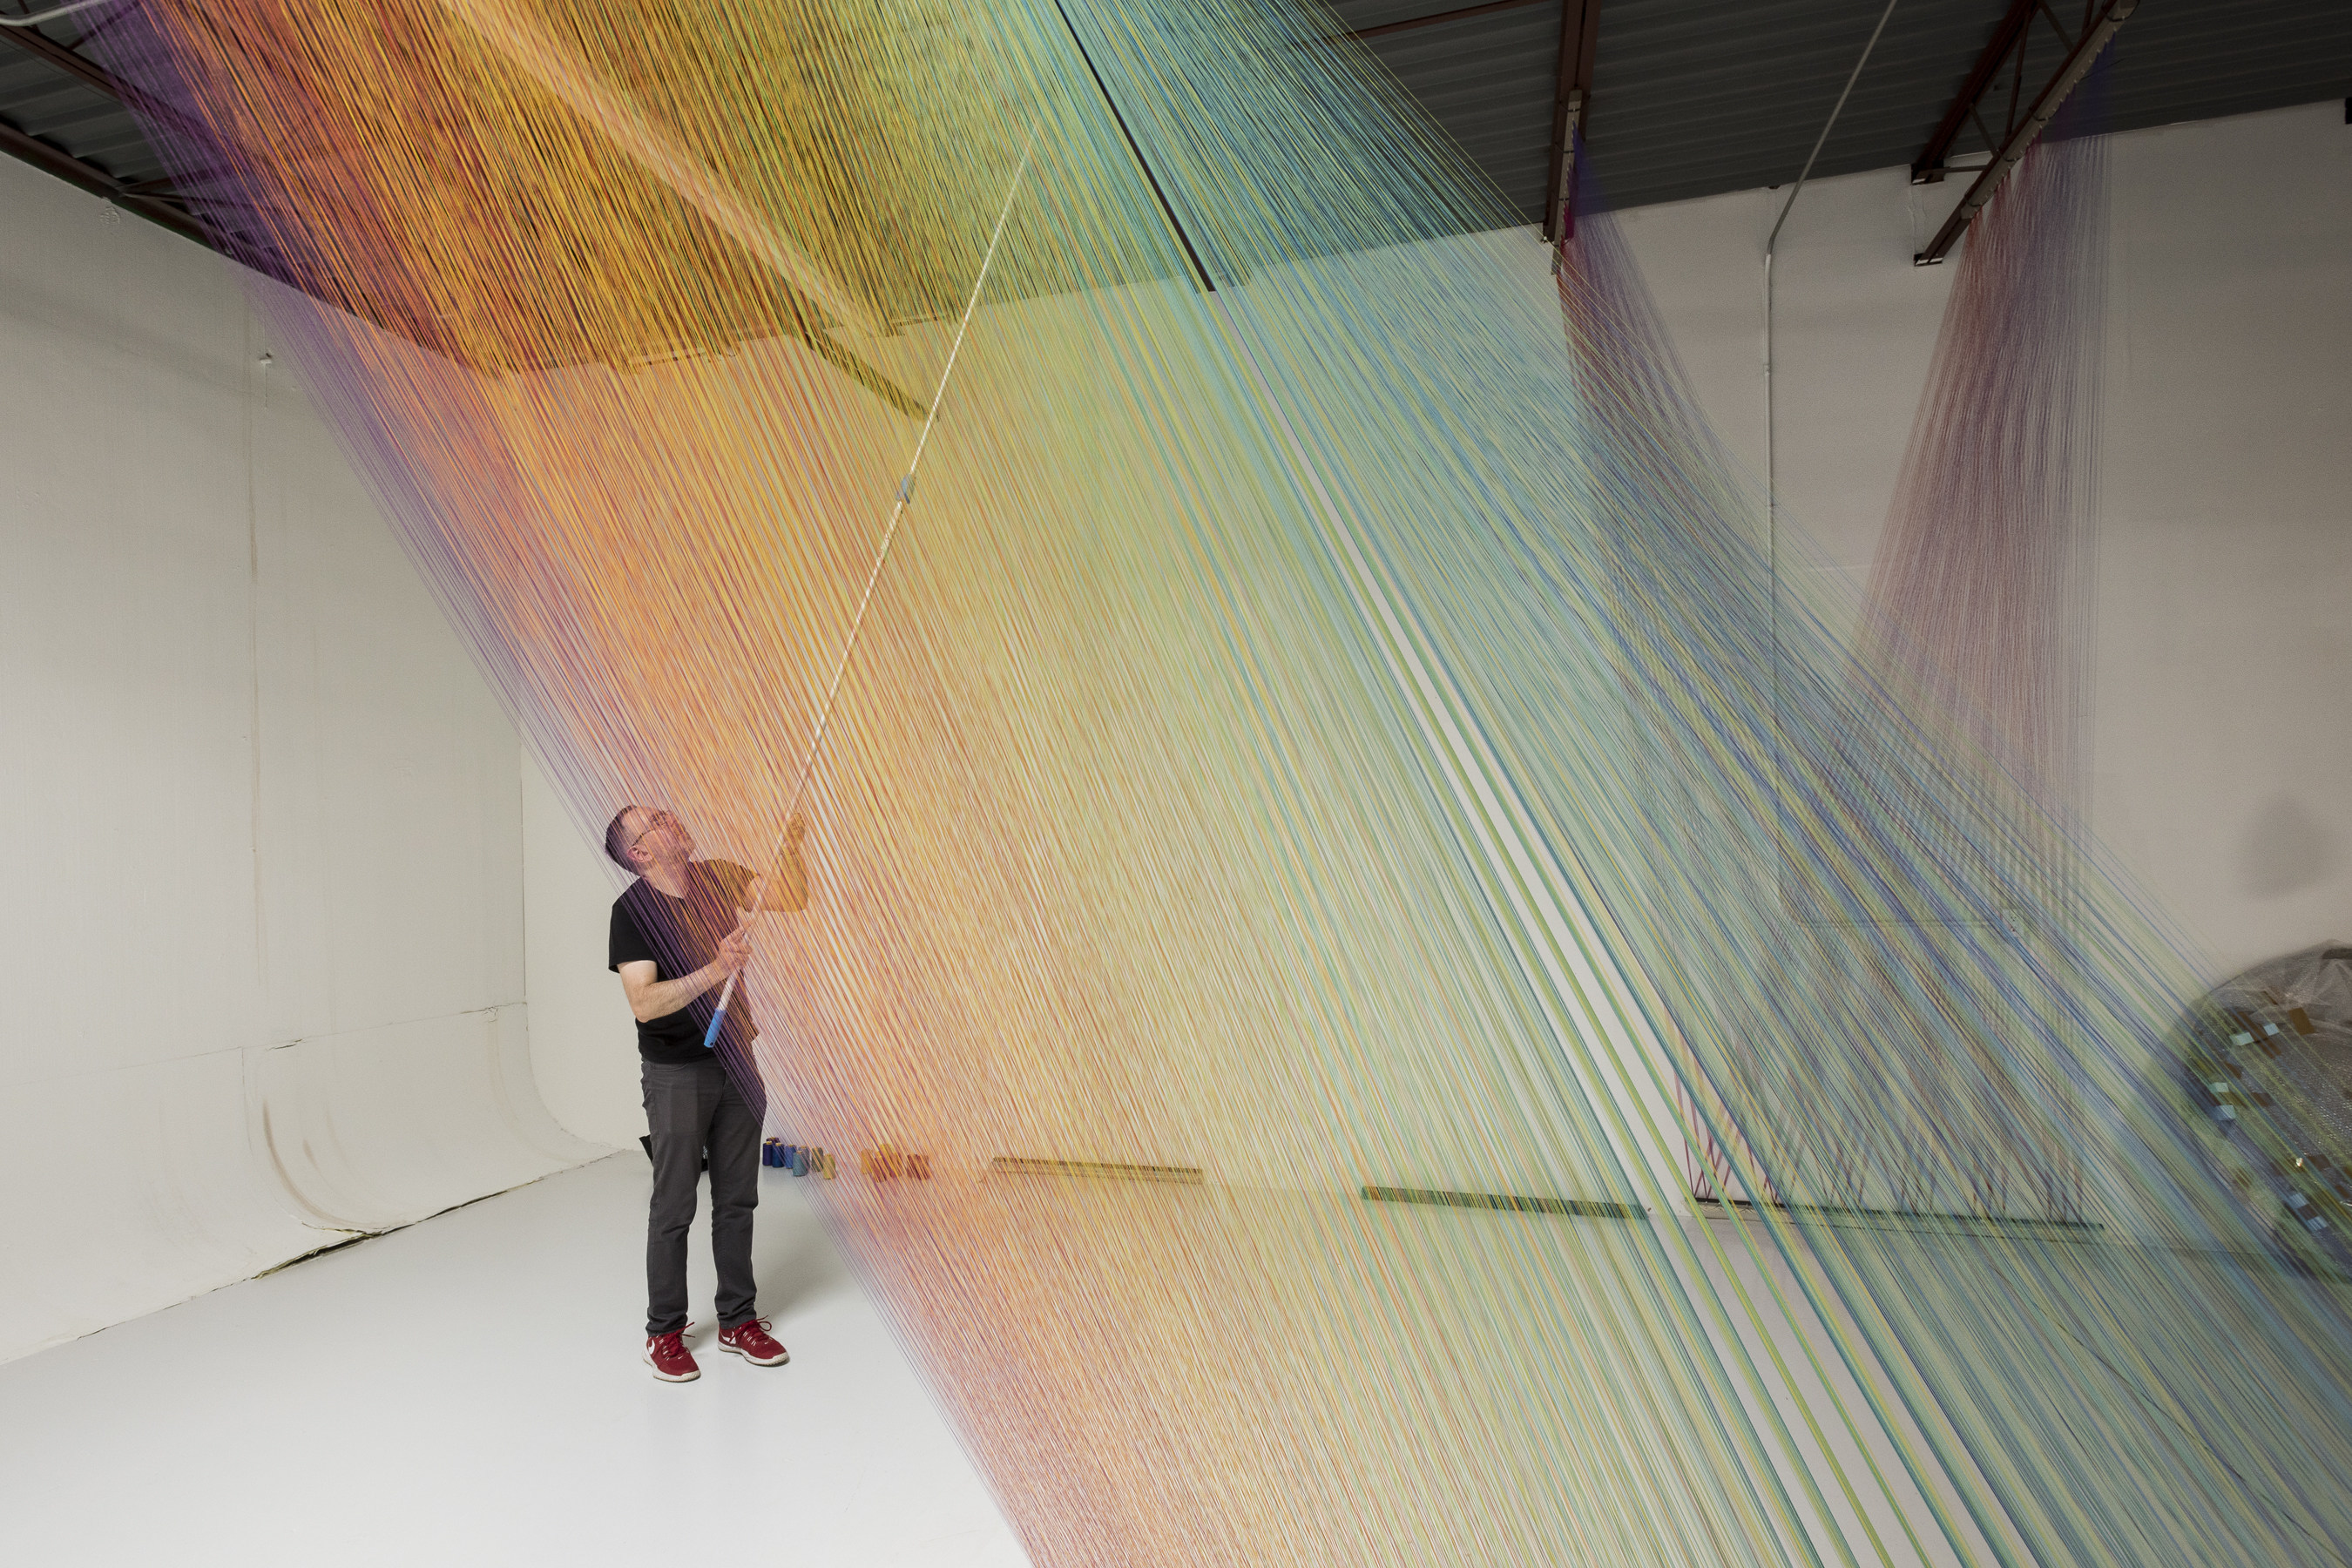 Artist Gabriel Dawe to Create Installation with 60 Miles of Thread inside the Amon Carter Museum of American Art